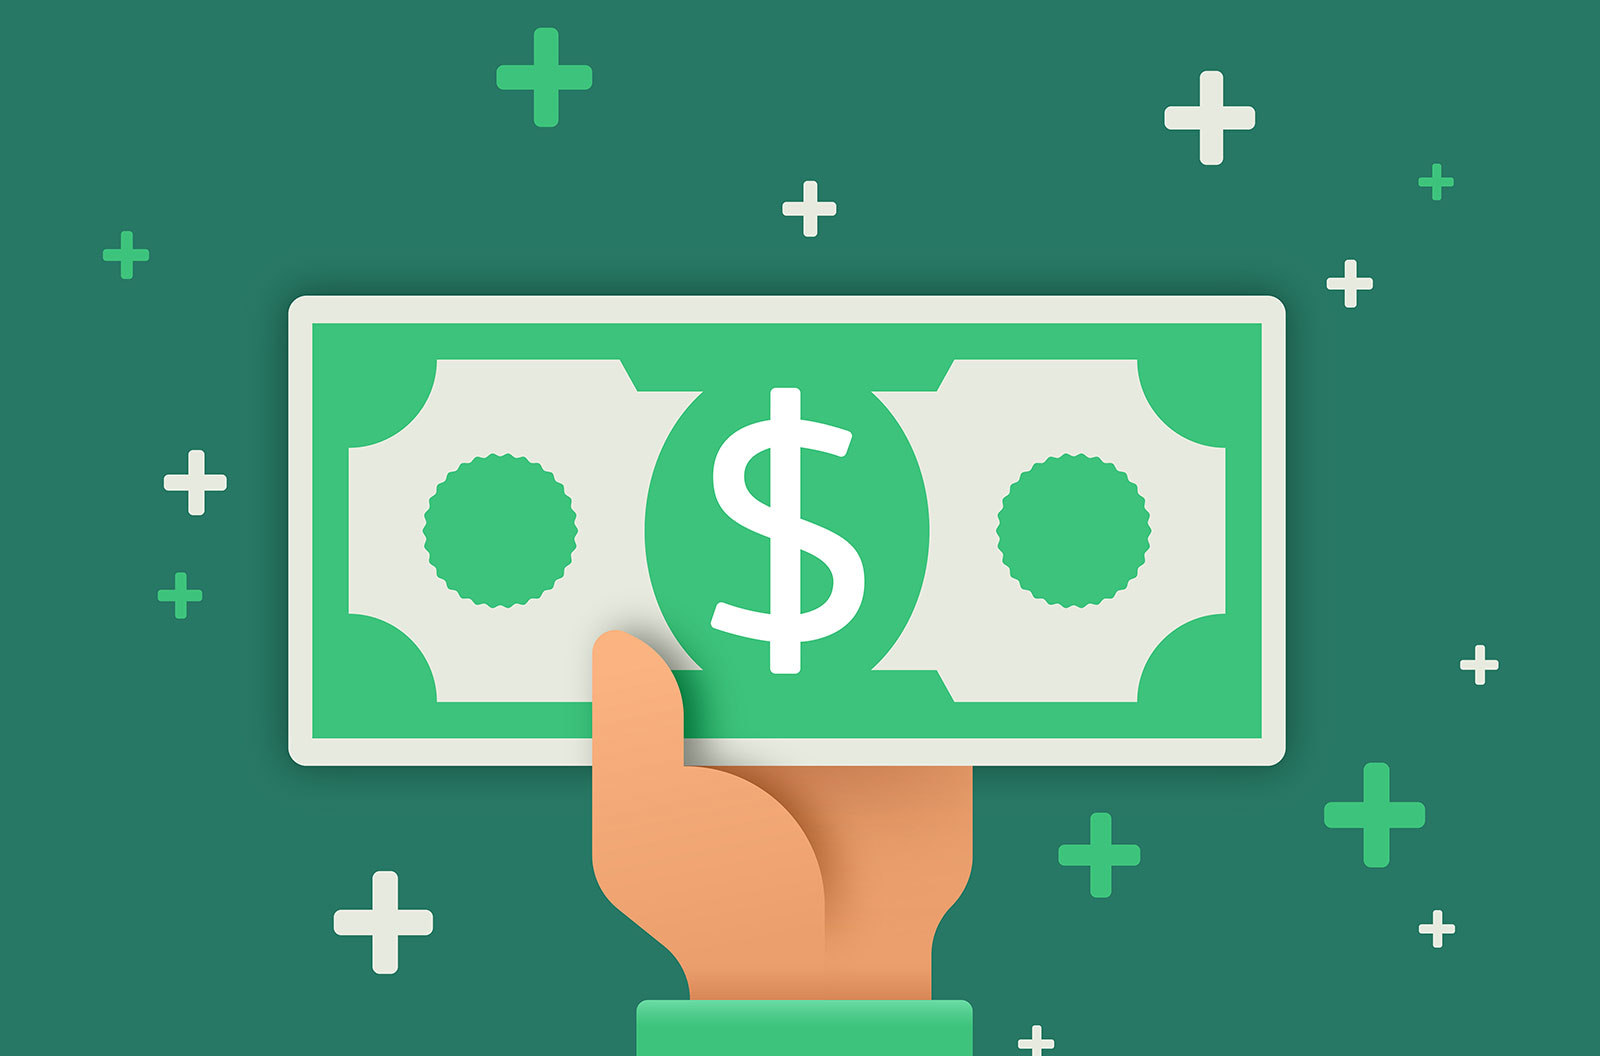 Illustration of a hand paying or receiving cash with a green background